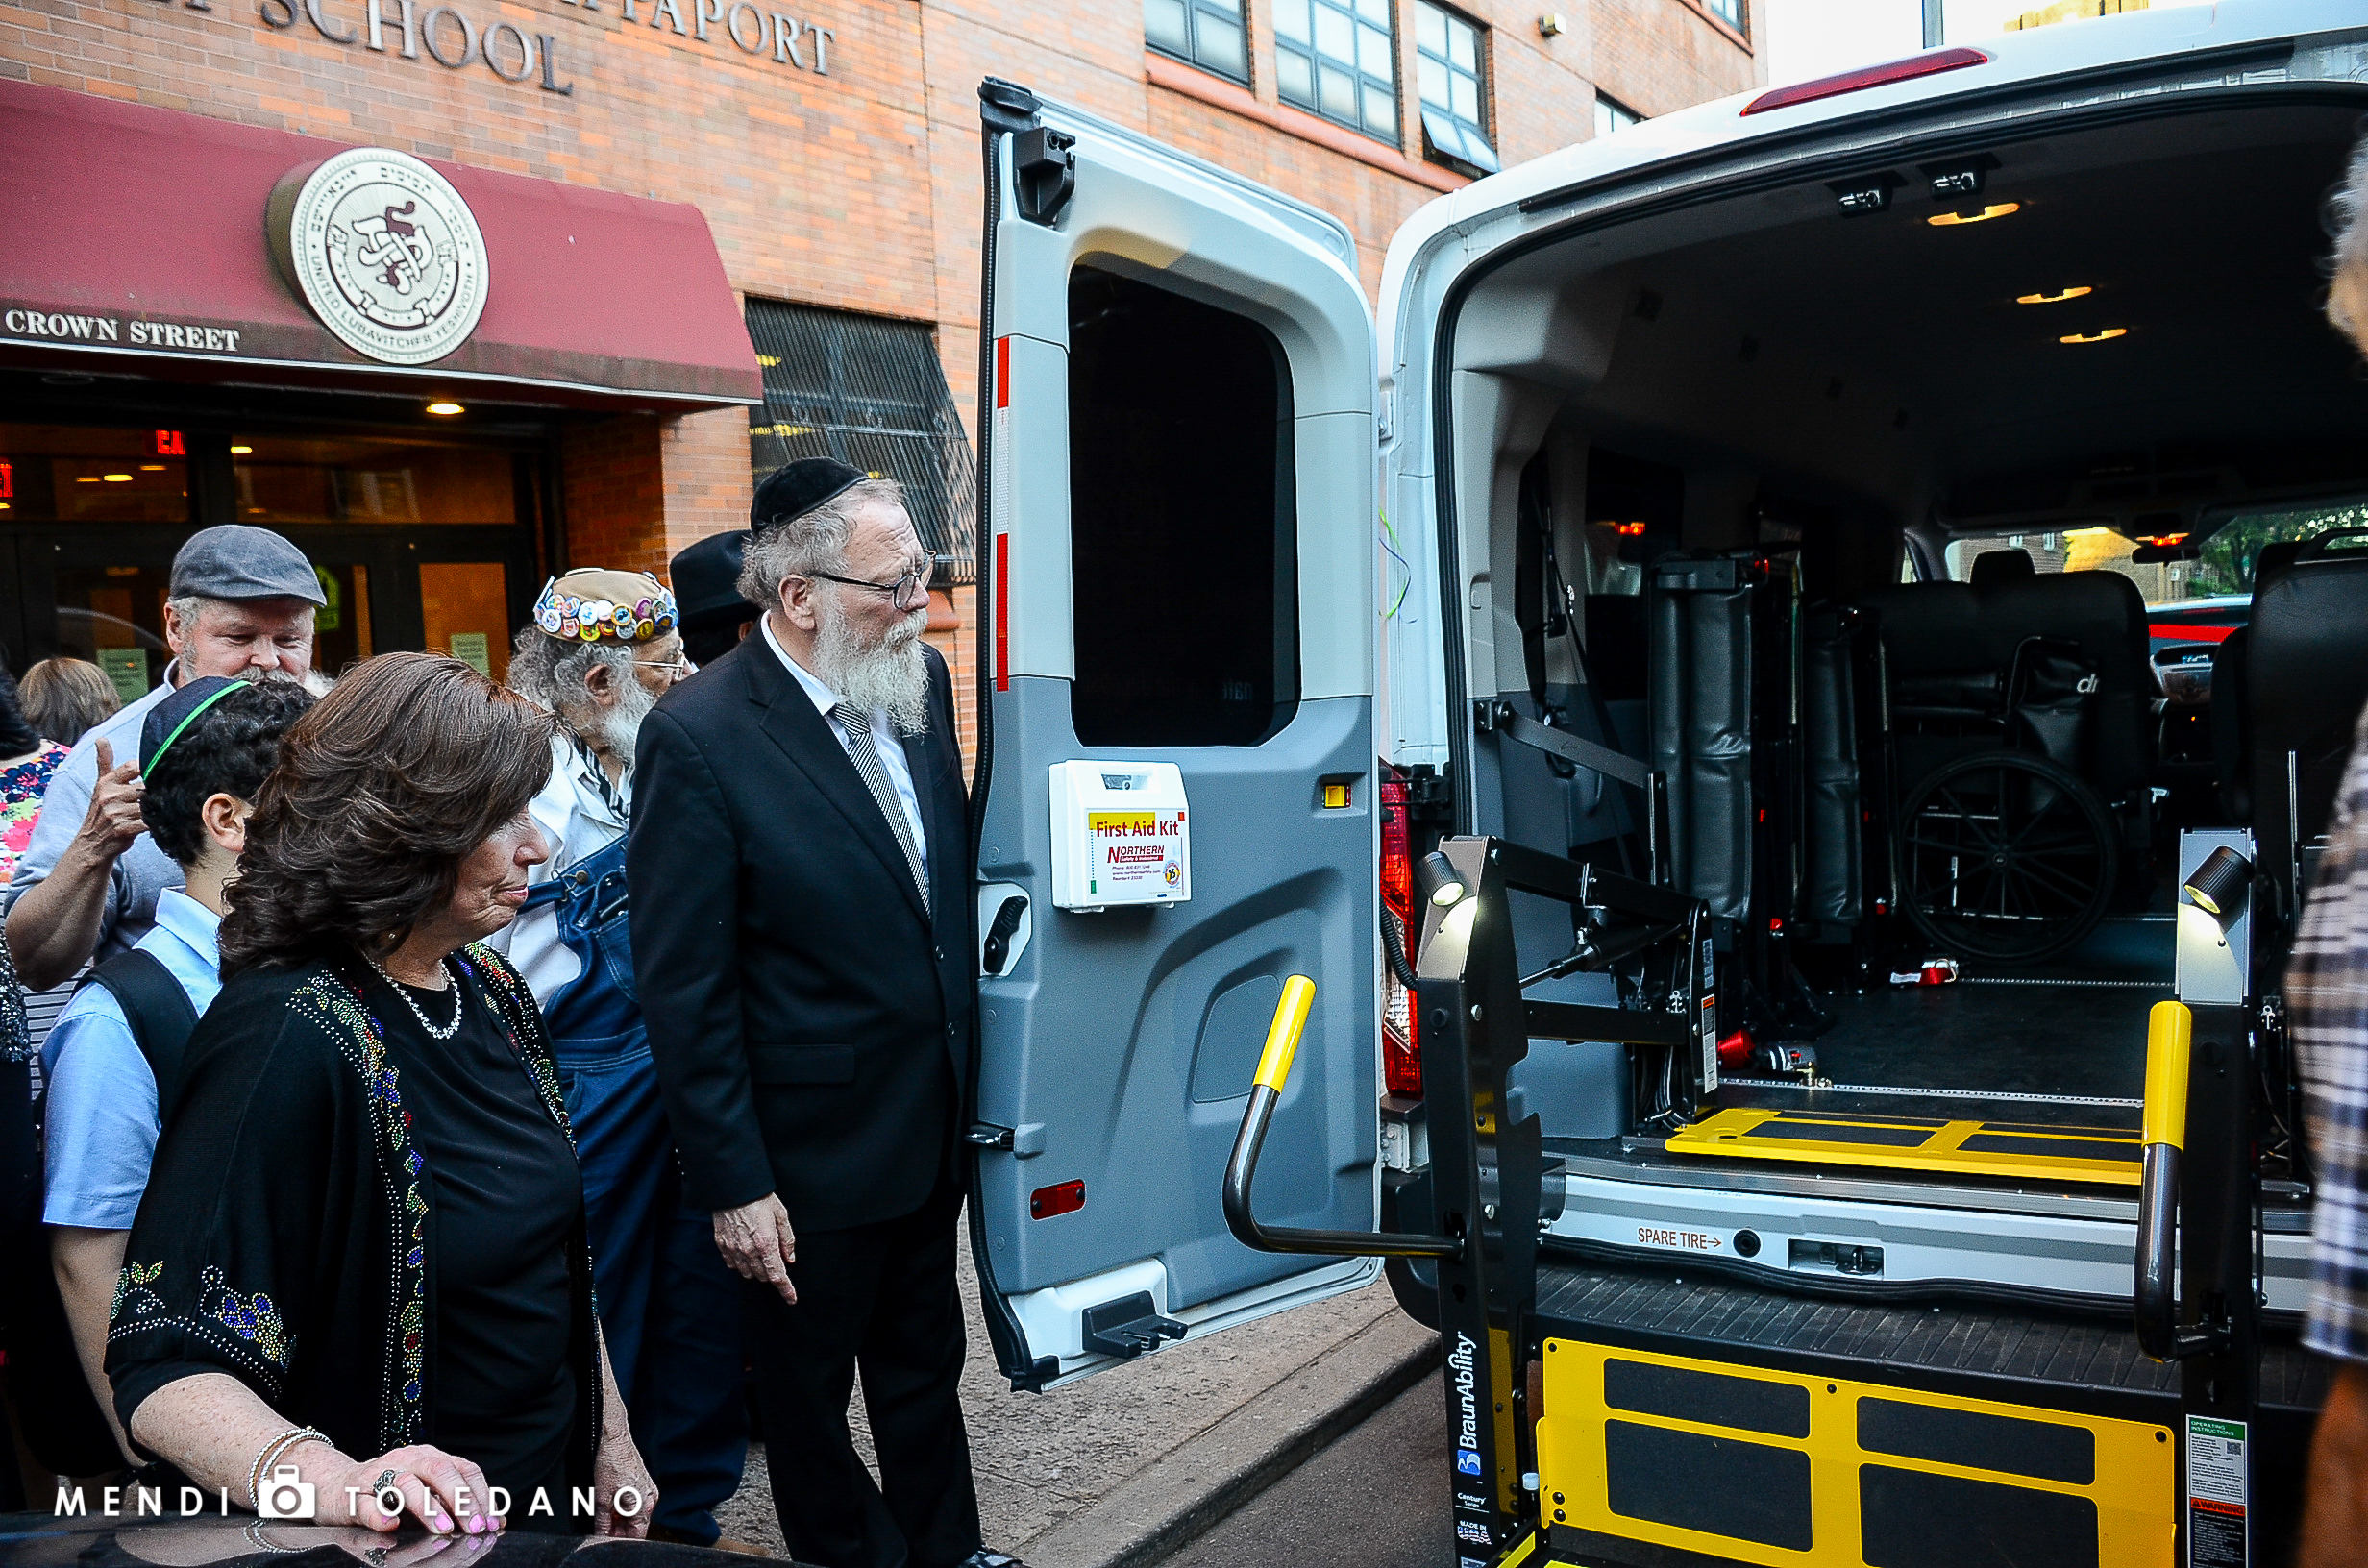 Reviewing the specially equipped ambulette